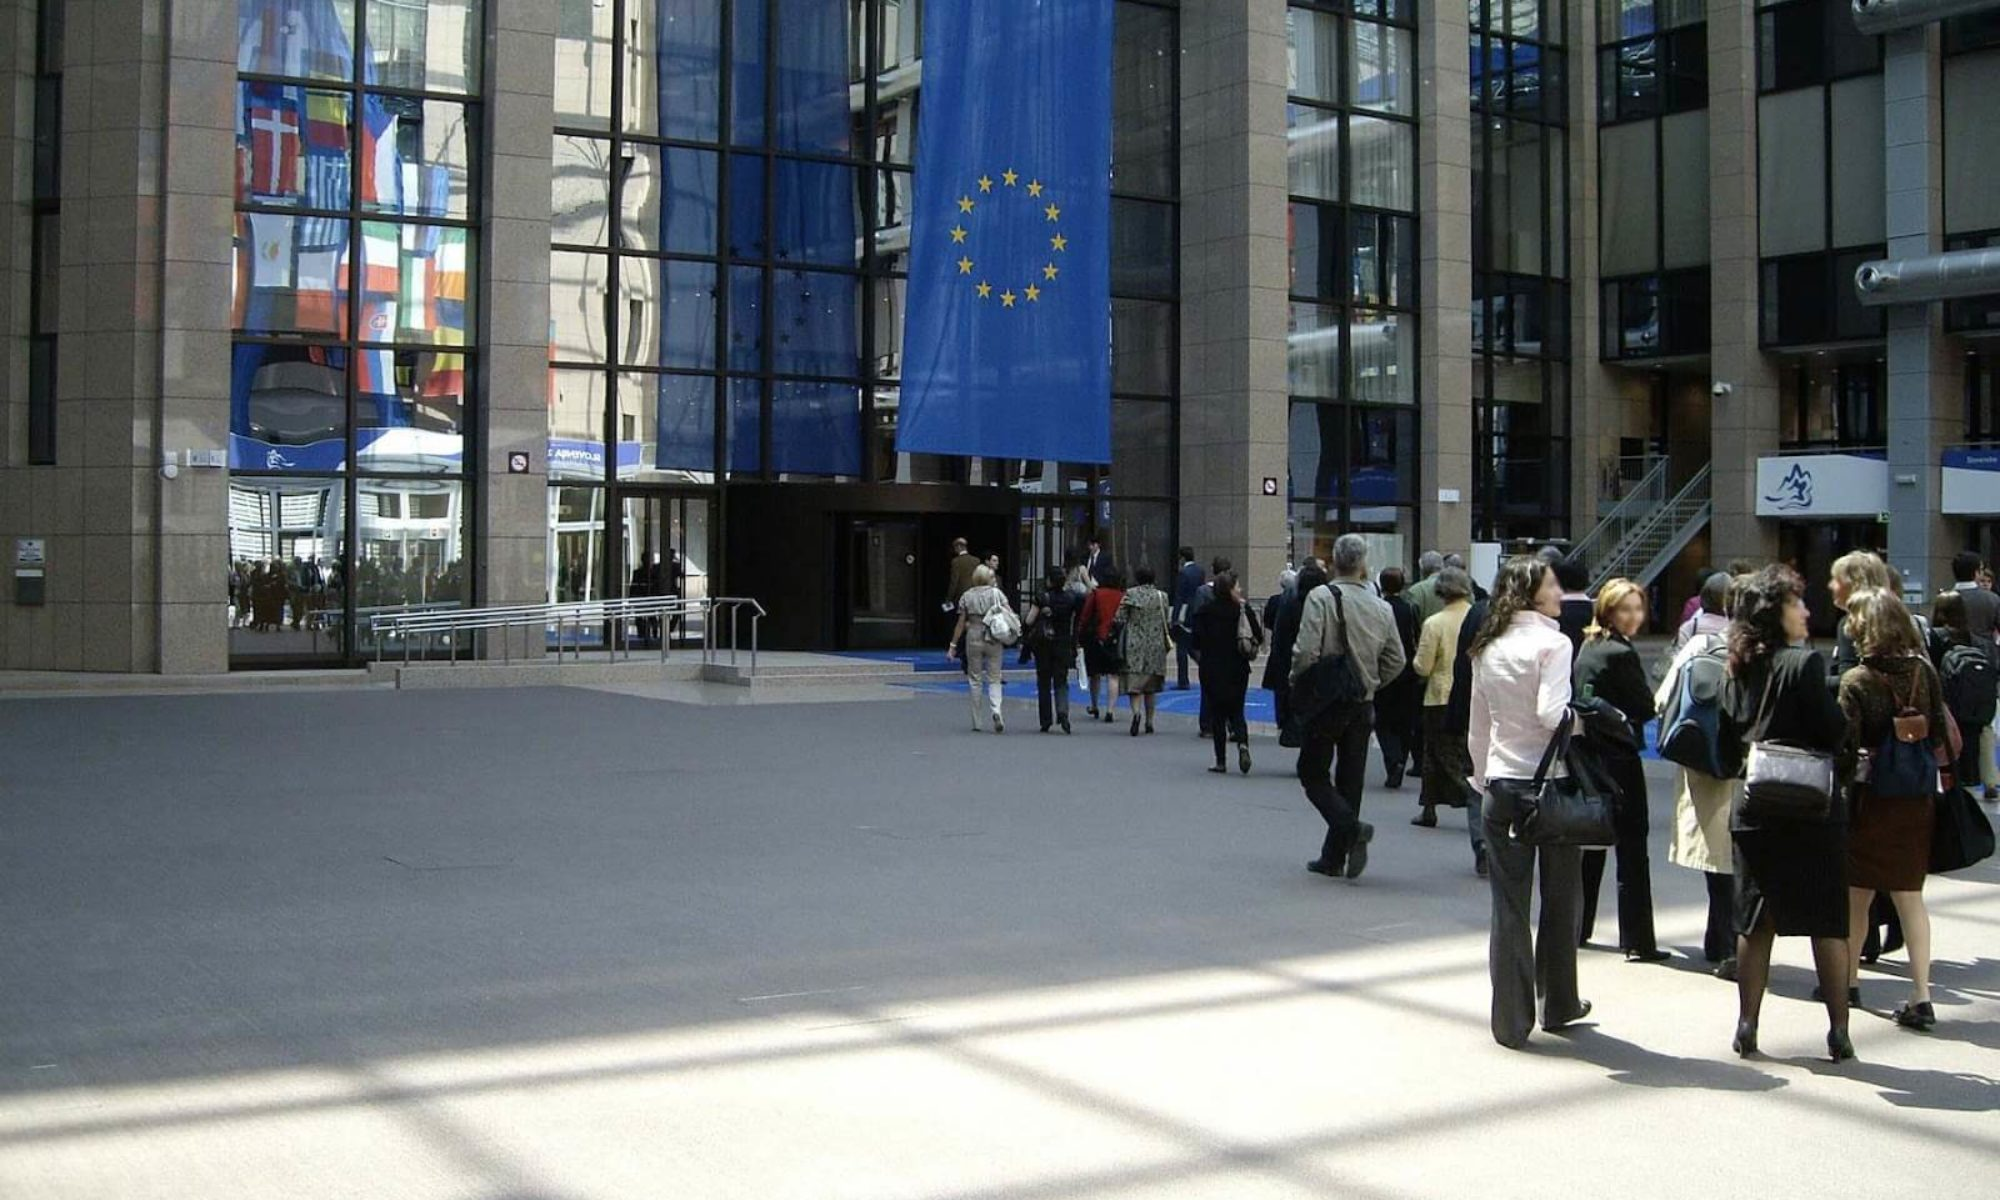 Centro Documentación Europea UFV